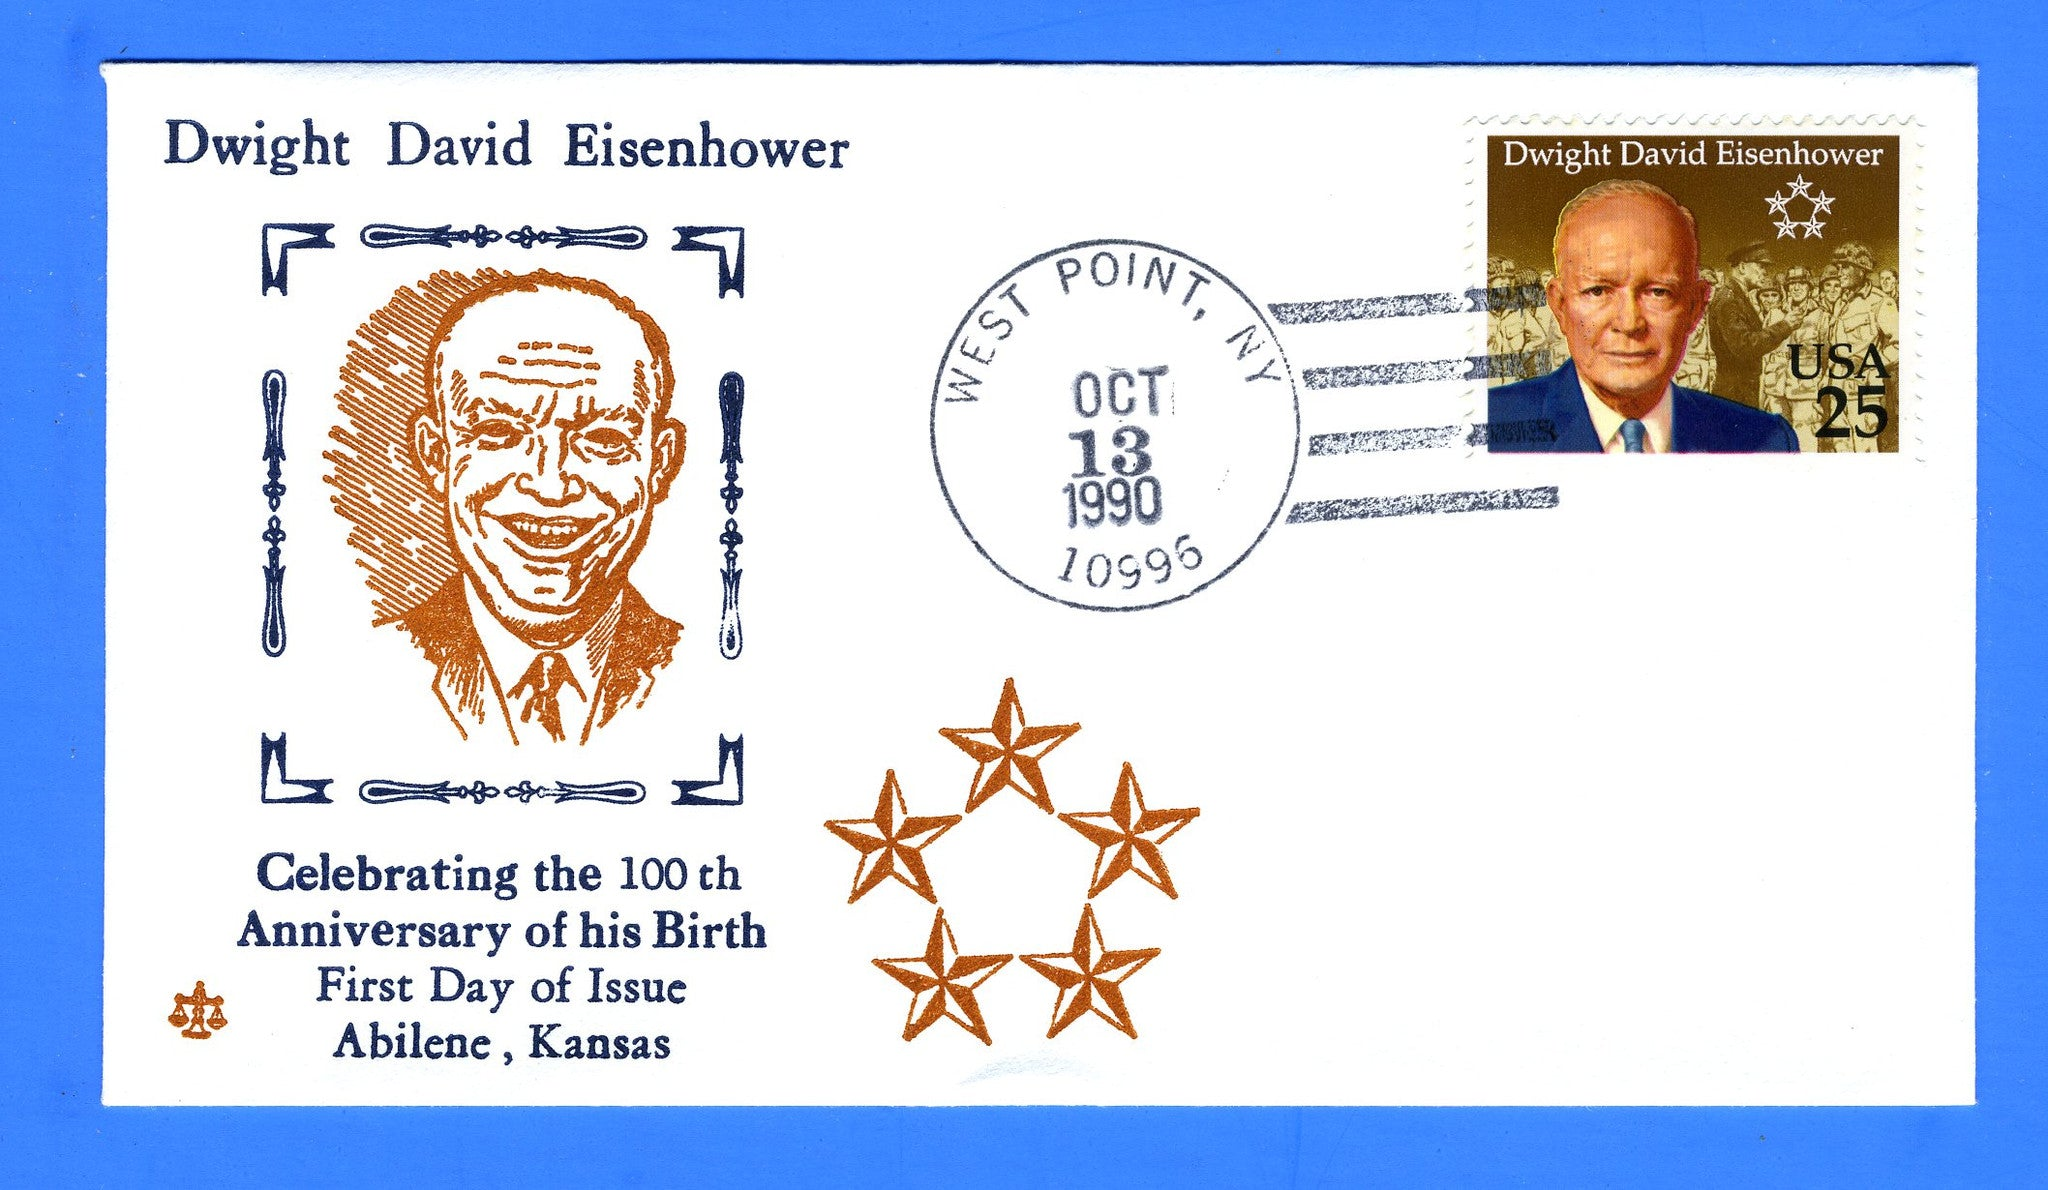 Scott 2513 25c Dwight D Eisenhower FDC by Blair Law - Unofficial West Point, NY Cancel